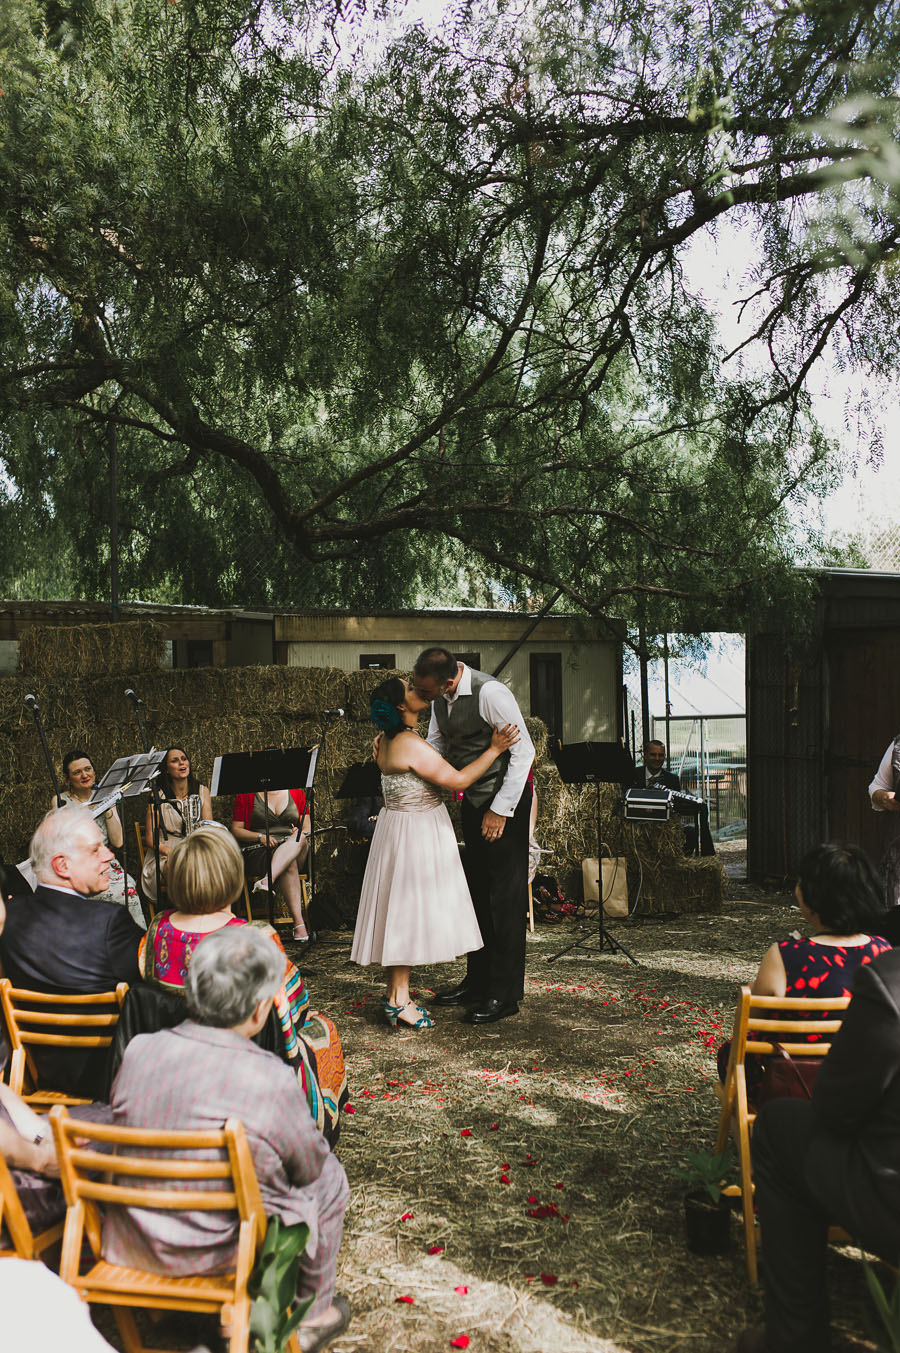 The wedding kiss PepperTree Place Coburg